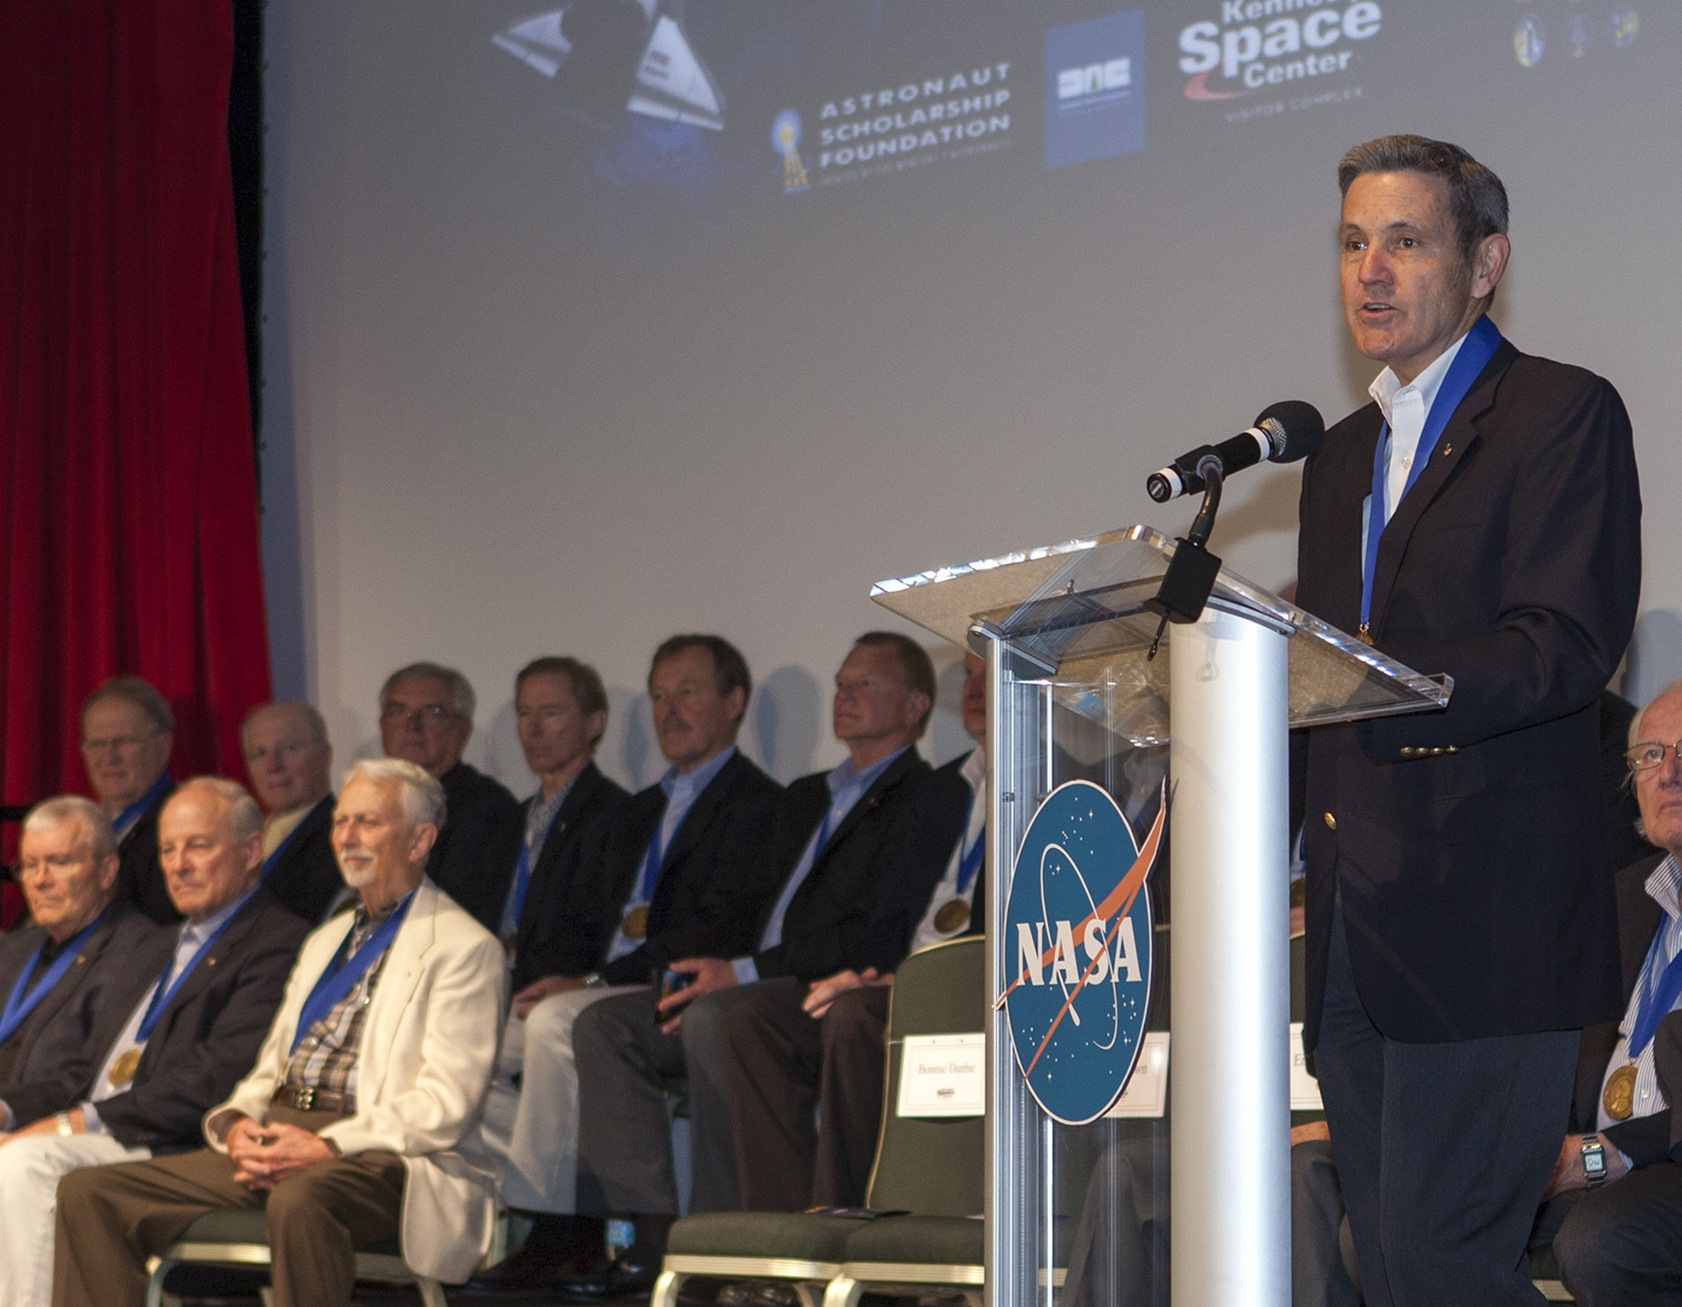 astronaut hall of fame members - photo #17